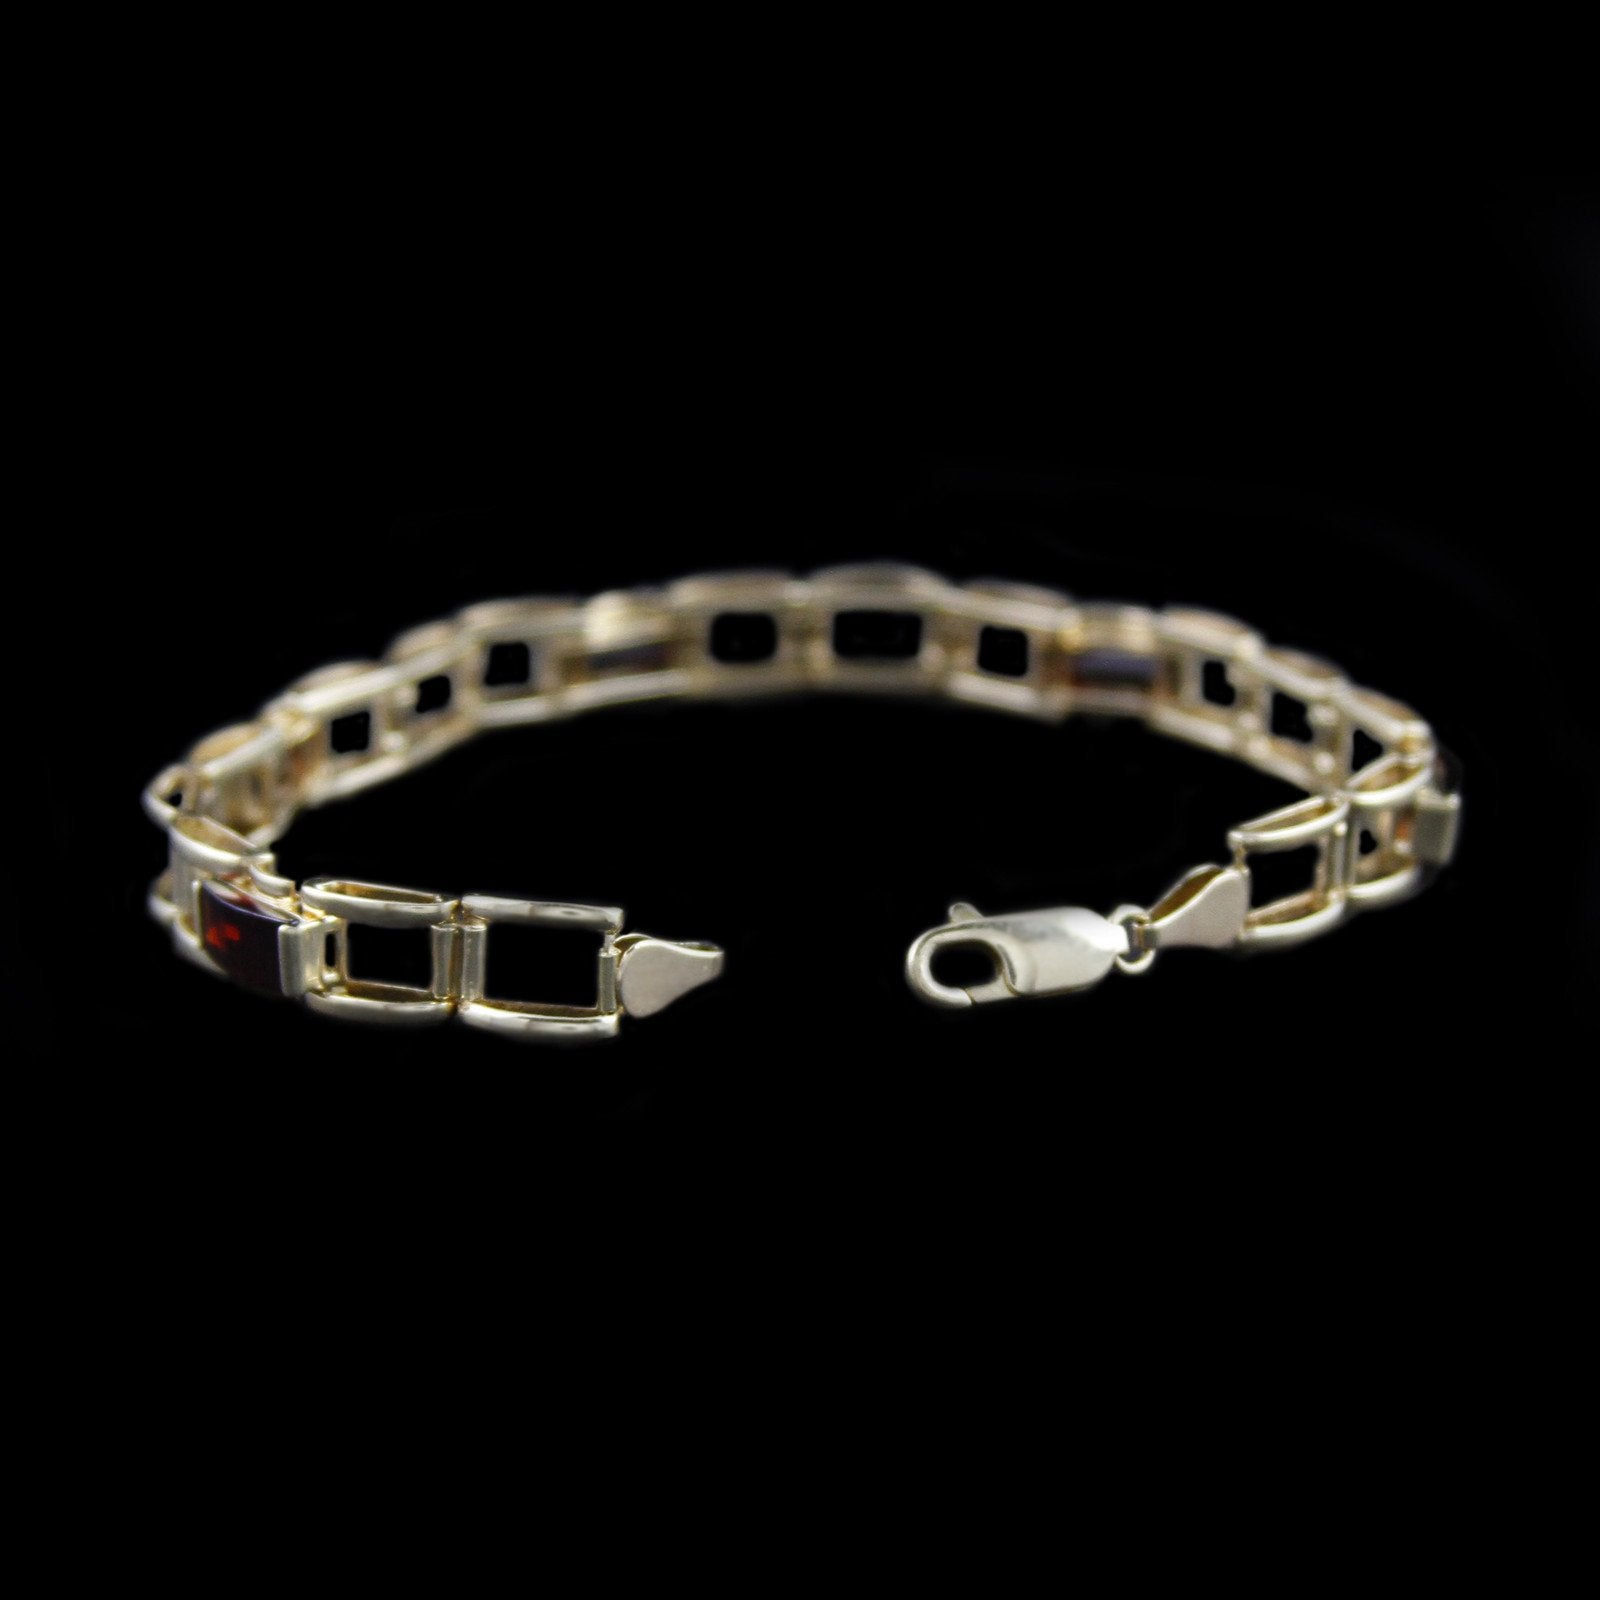 Beautiful Garnet Bracelet with Open Square Design Links in 14K Yellow Gold-1